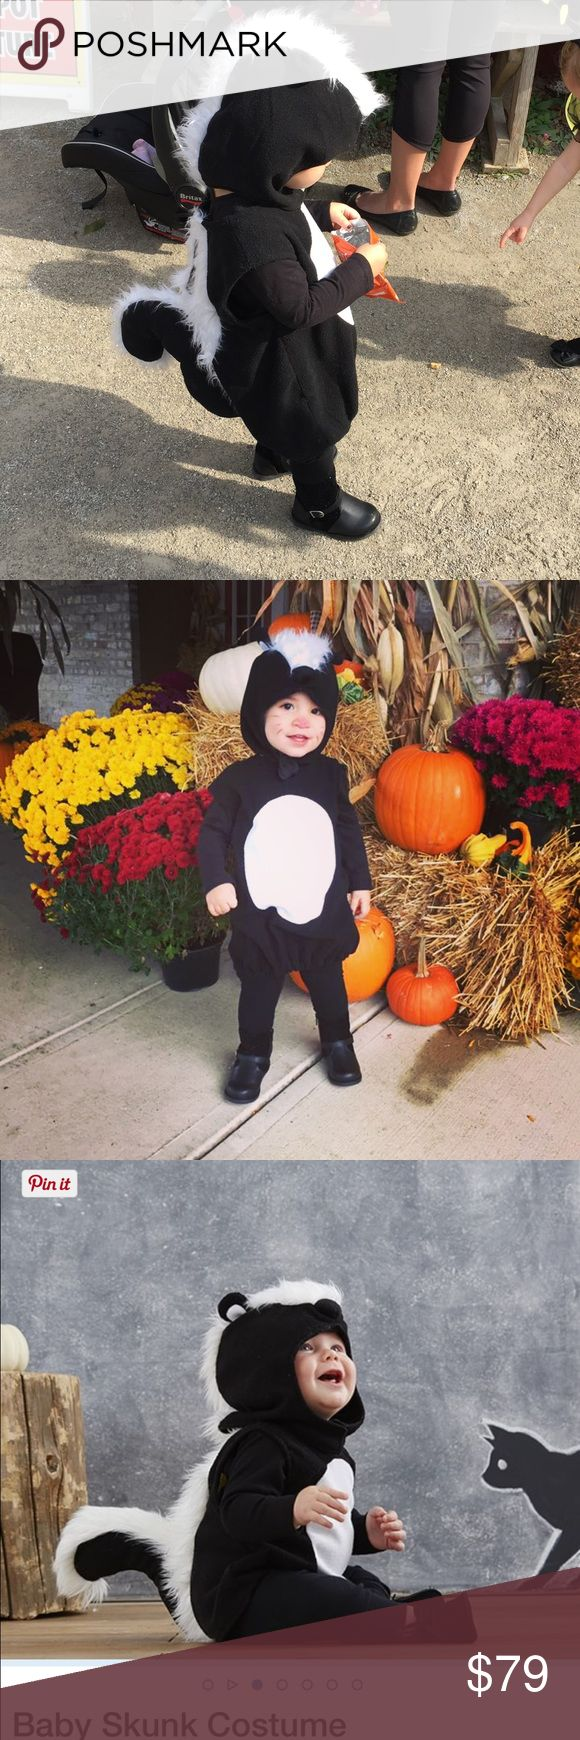 "Pottery Barn infant skunk costume Omg! The CUTEST COSTUME EVER! People were dying over this. No longer available at pb and is selling on eBay for starting bids at 100! Worn once! Free matching ""skunk"" treat or treat bag also purchased from PB. pottery barn kids Costumes Halloween"